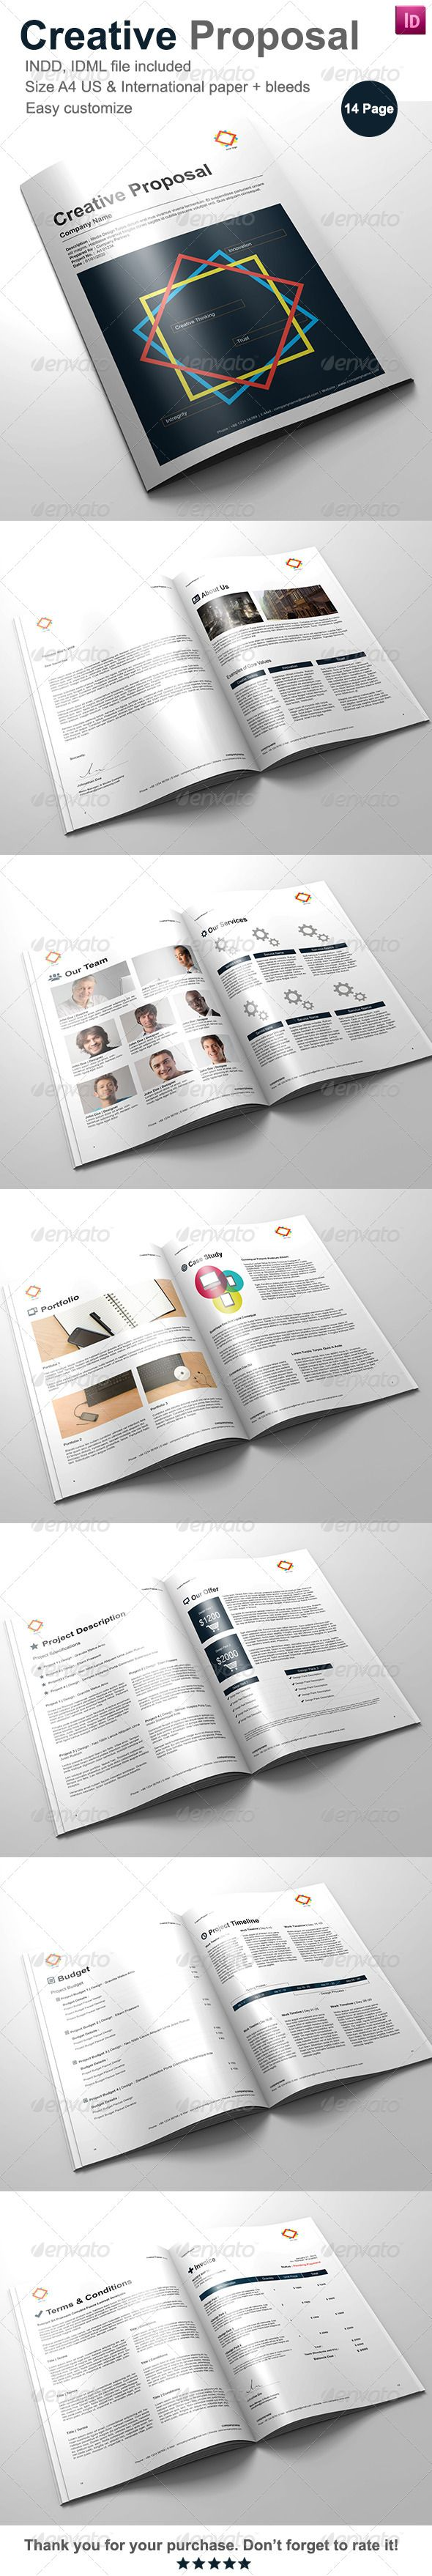 Commercial Proposal Format Amazing 504 Best Business Proposal Images On Pinterest  Proposal Templates .